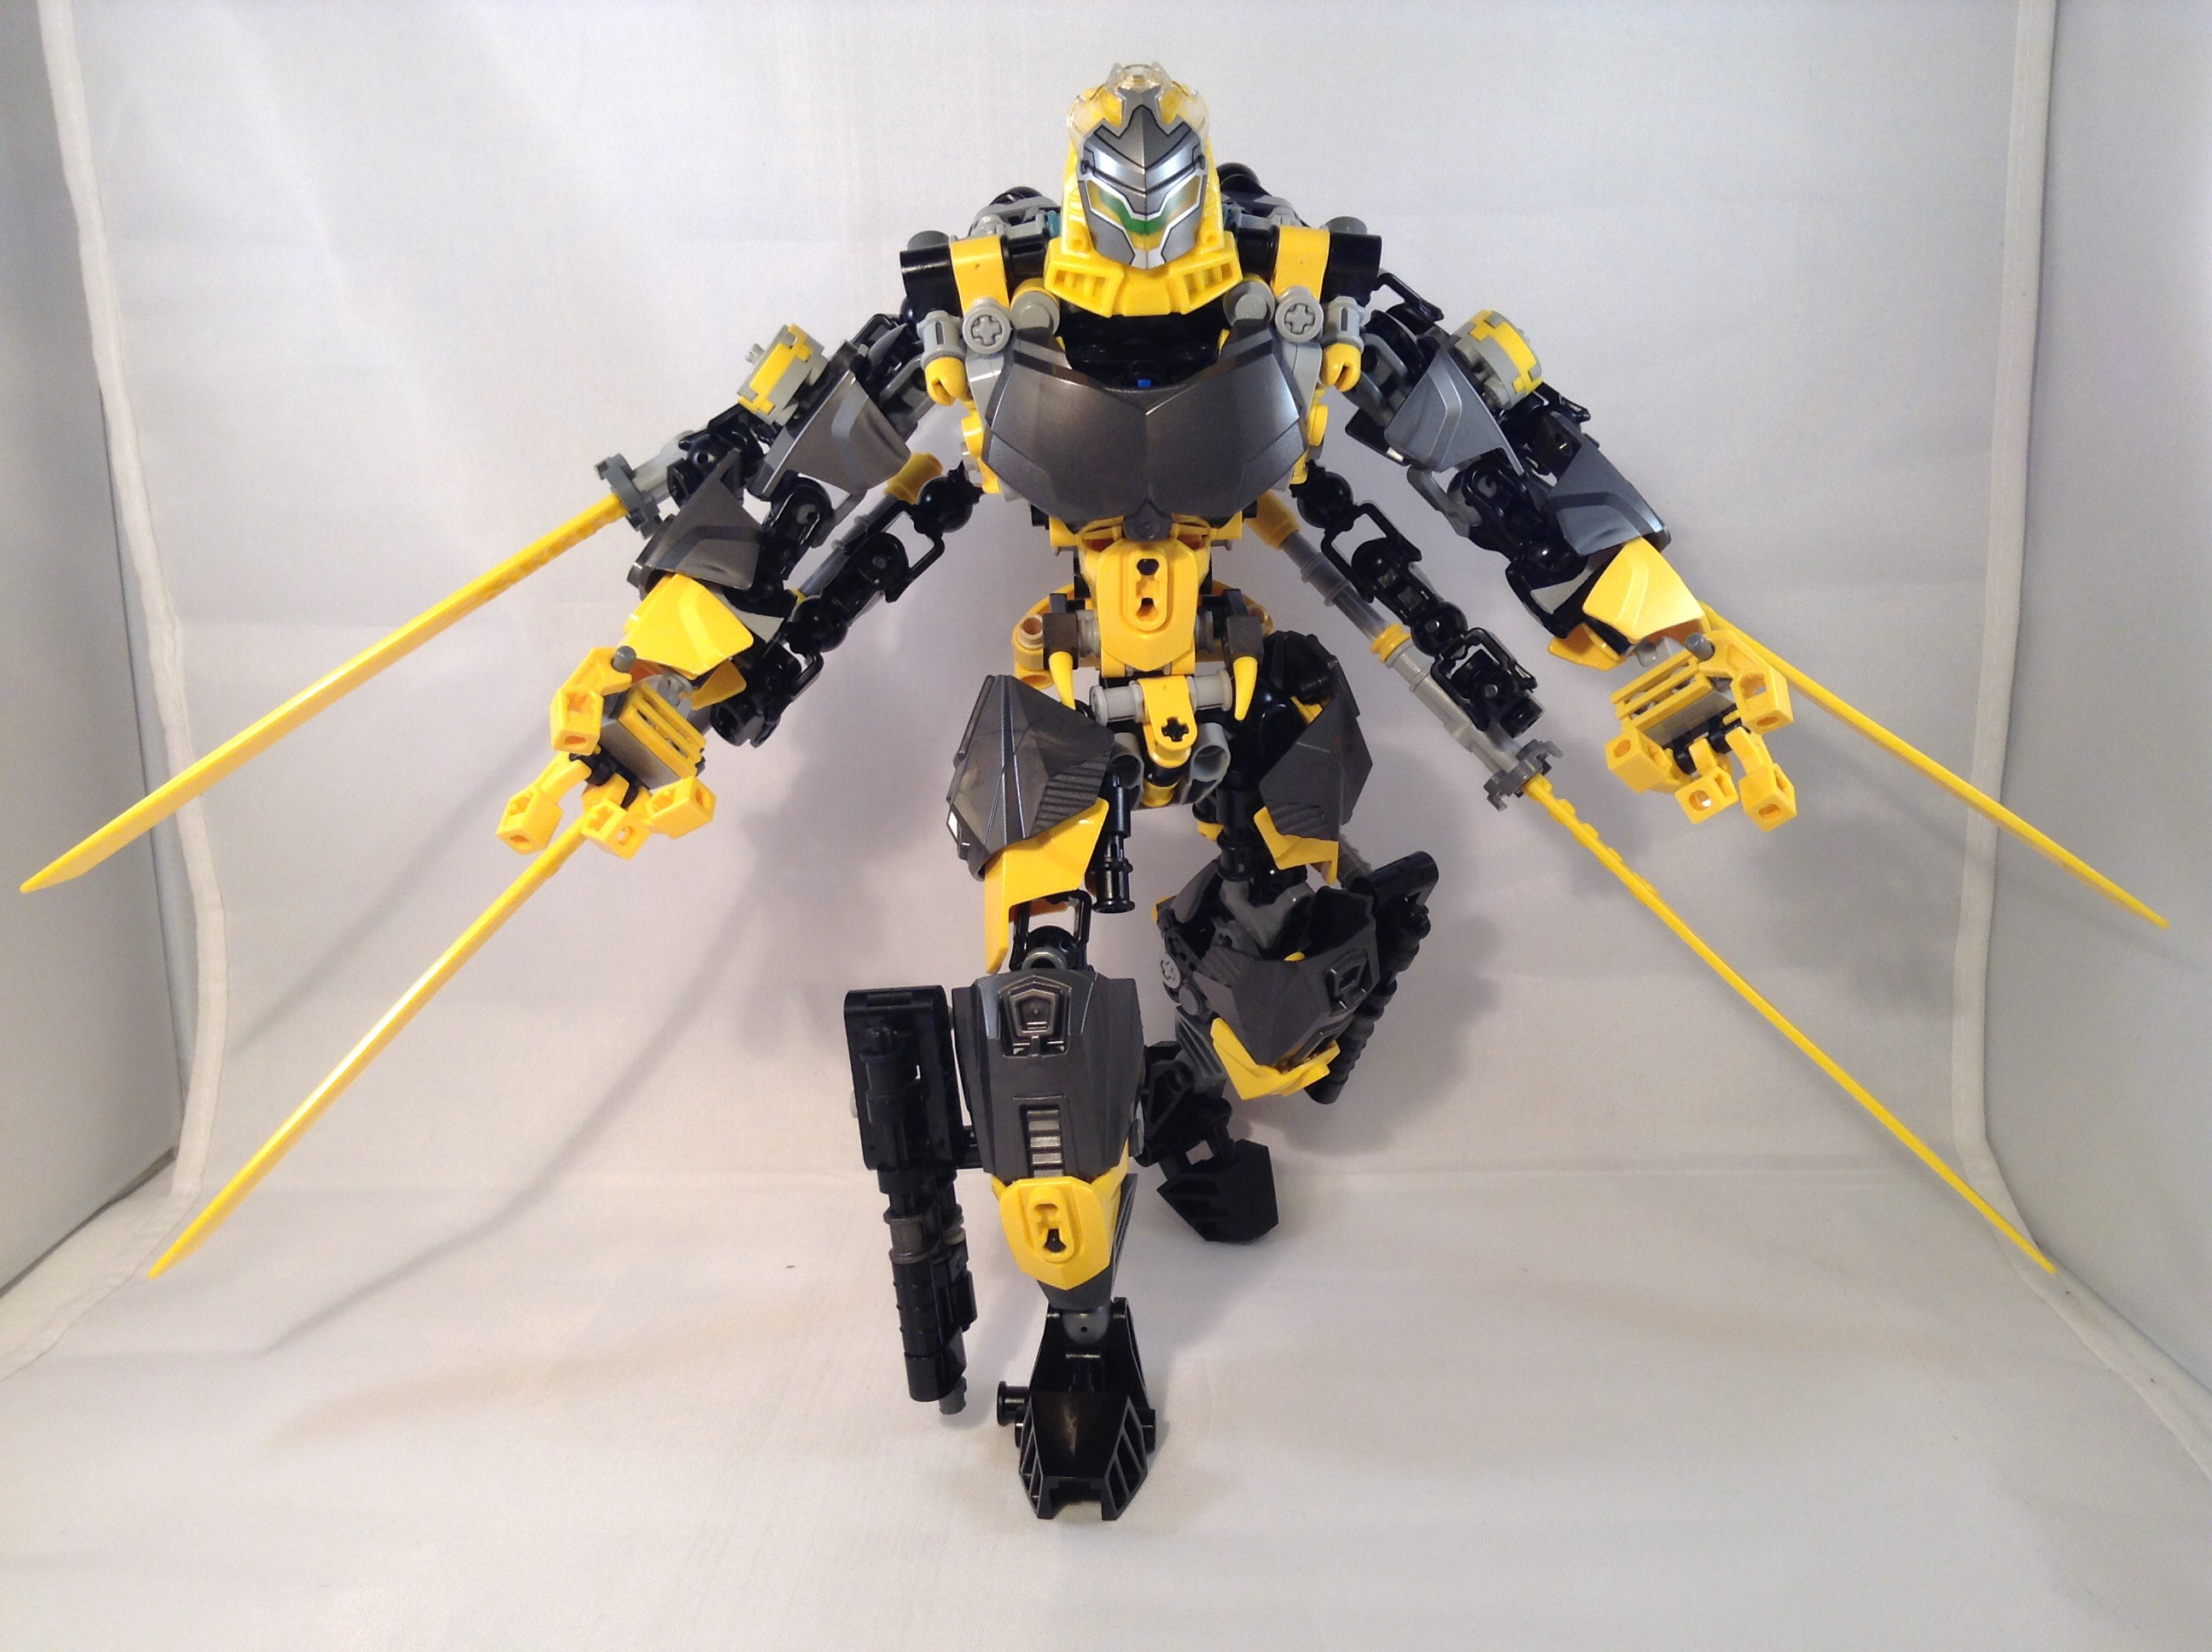 Lego Ccbs 2018 >> Toa Boltrax, Toa of Lighting 02 by MrBoltTron on DeviantArt